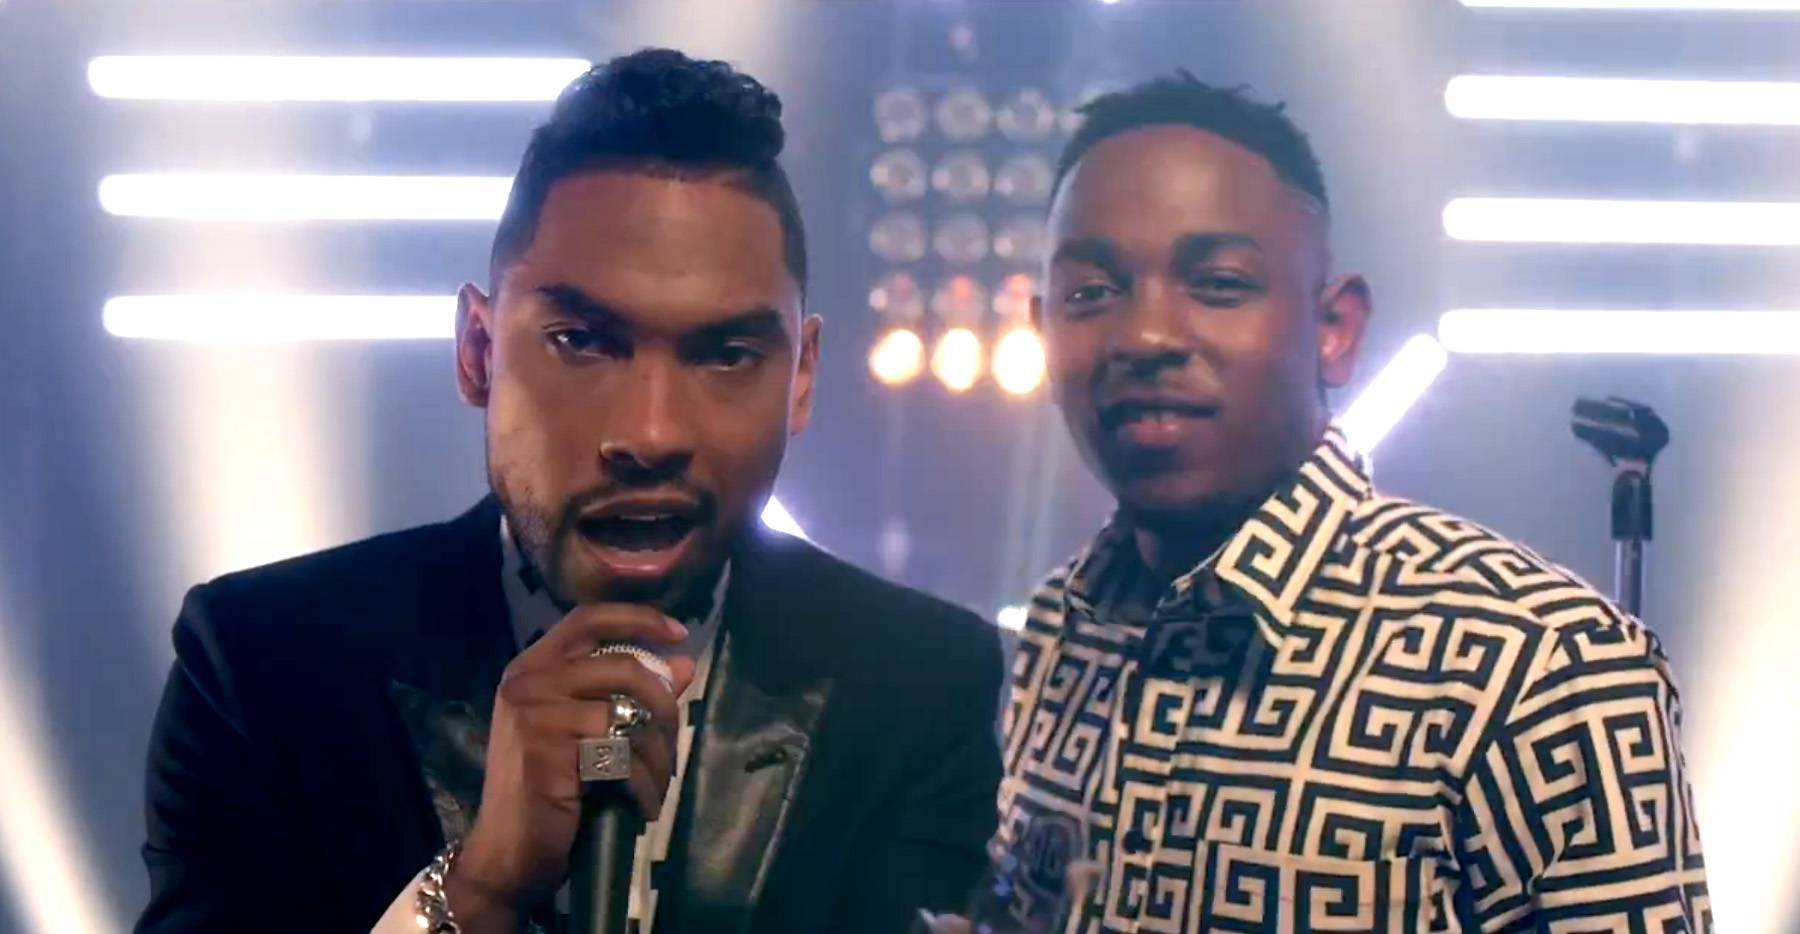 /content/dam/betcom/images/2013/04/Music-04-16-04-30/041913-music-miguel-drops-how-many-drinks-video-with-kendrick-lamar.jpg